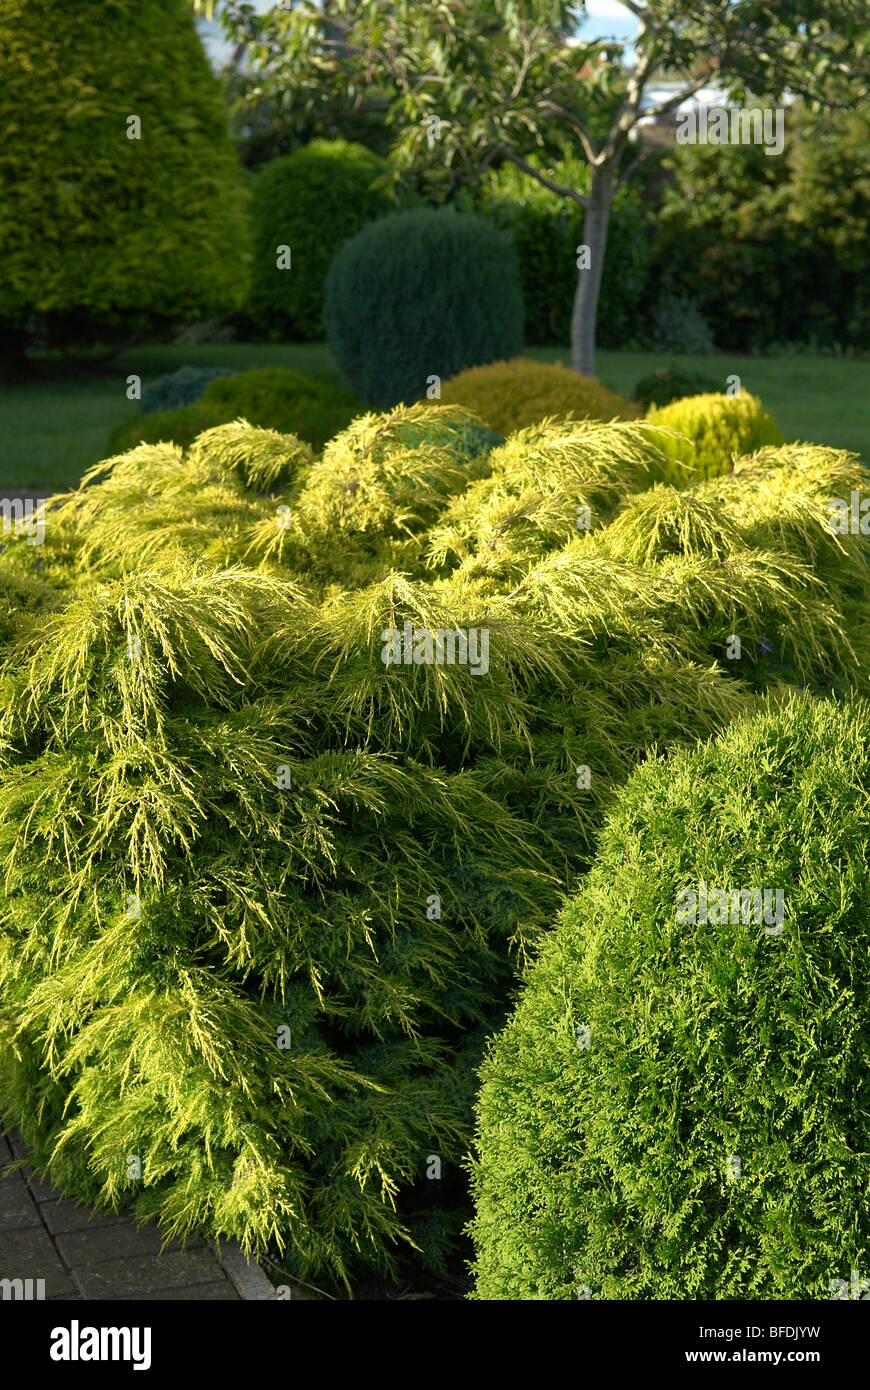 Conifers as part of a garden - Stock Image